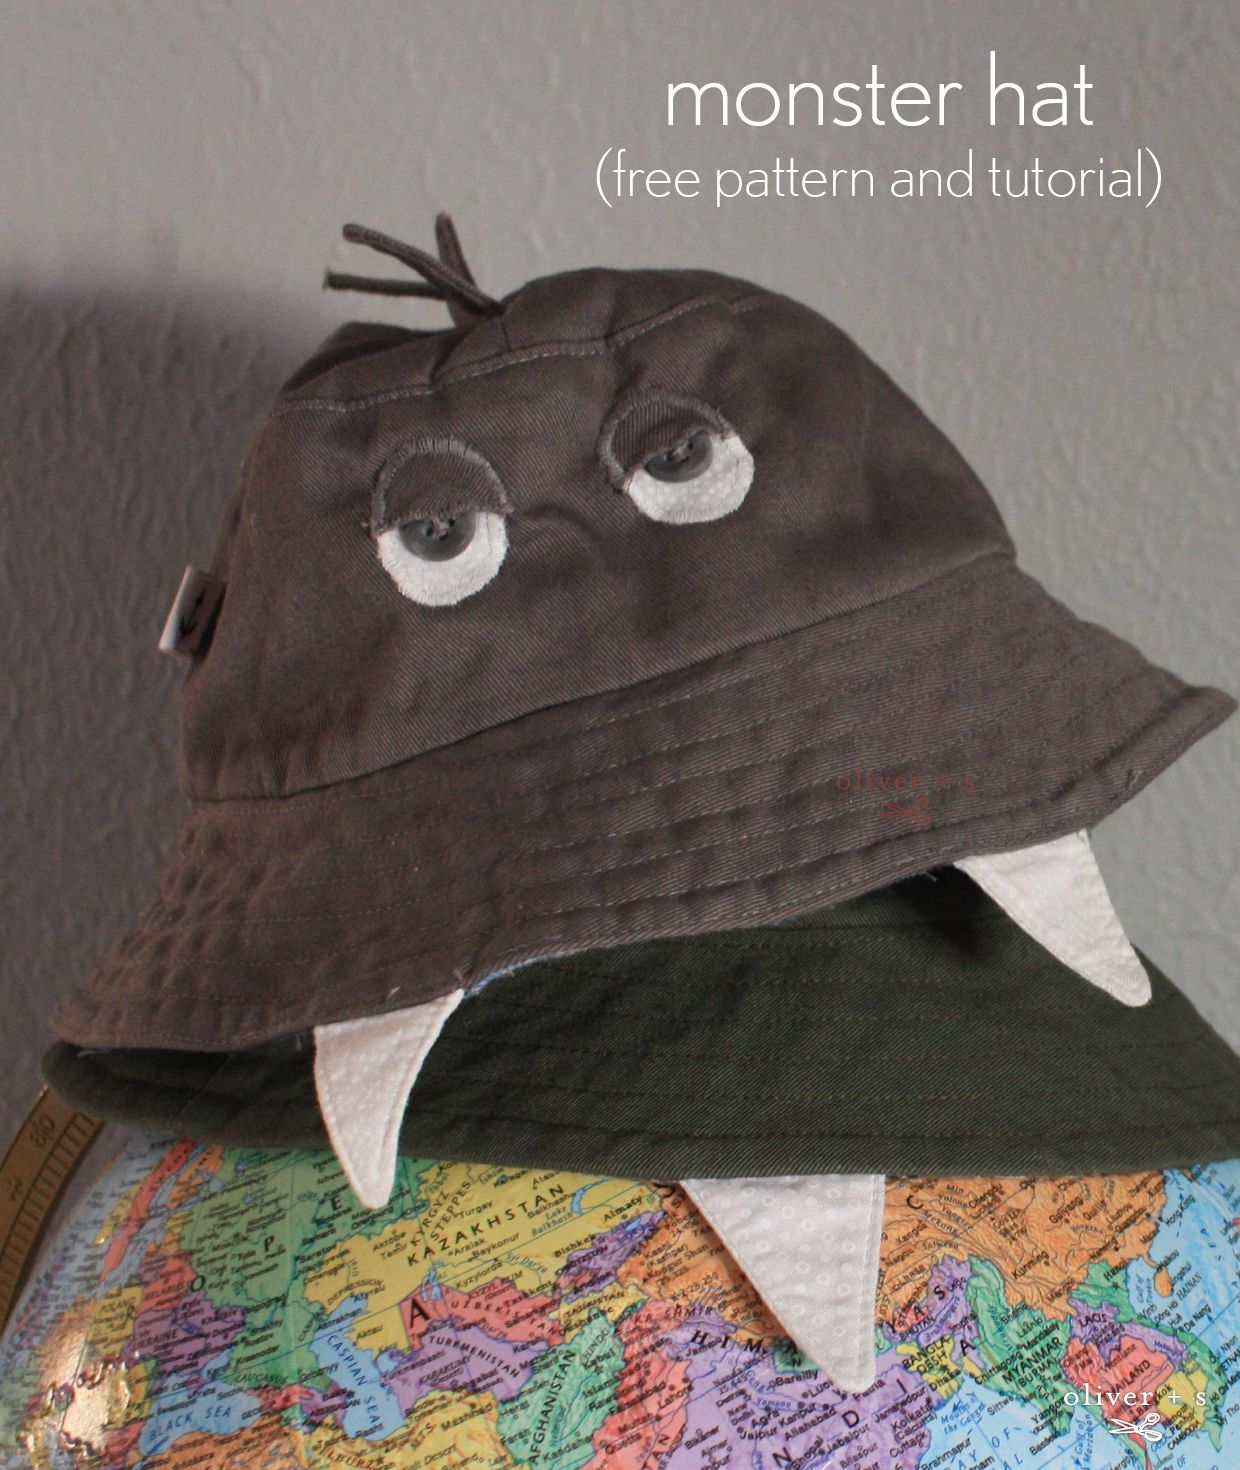 monster hat: free pattern and tutorial